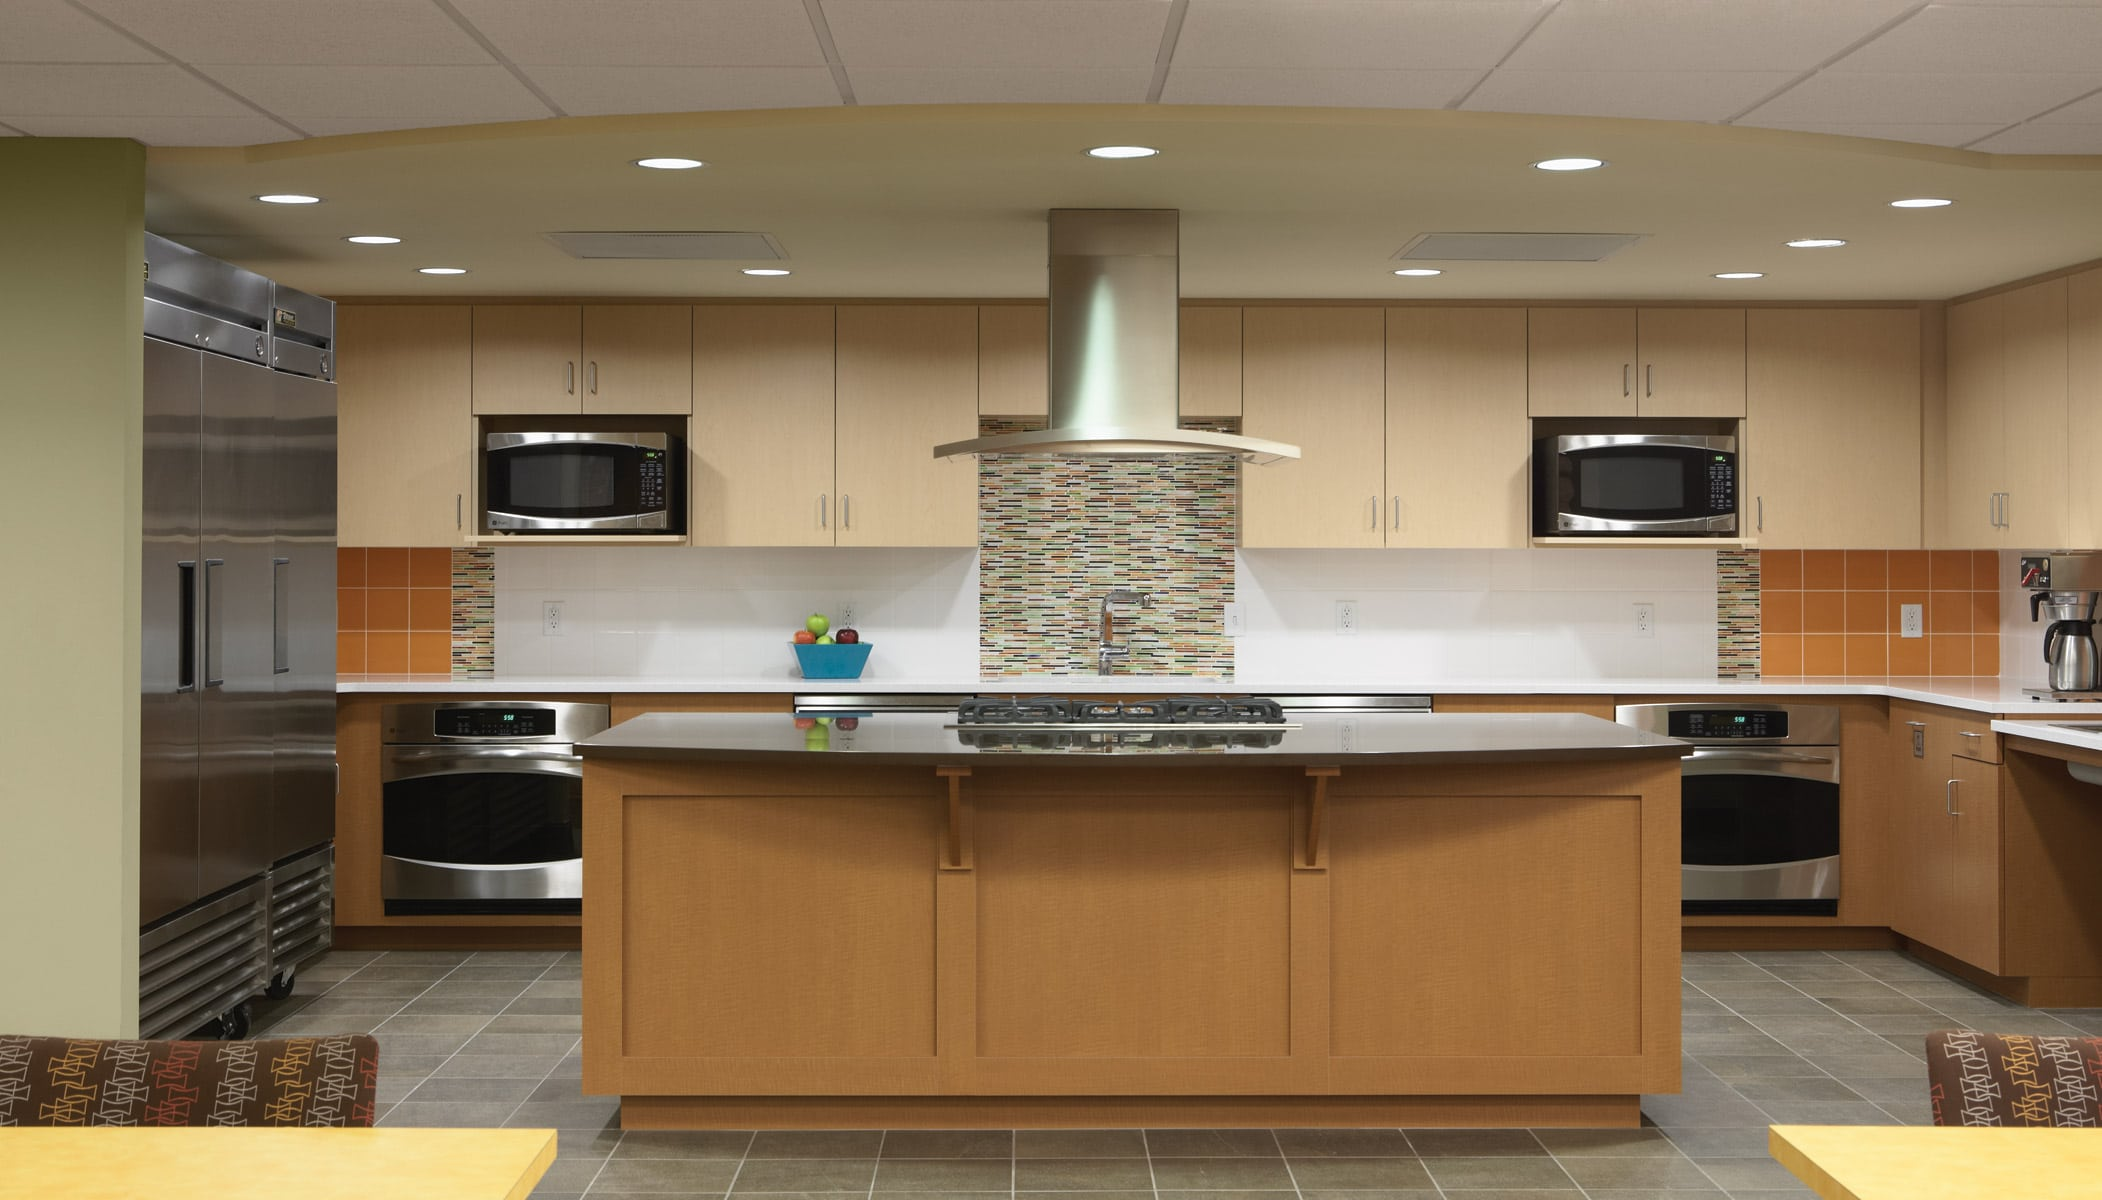 Commerical-Demonstration-Kitchen-Design-Minneapolis-Interior-Designer.jpg